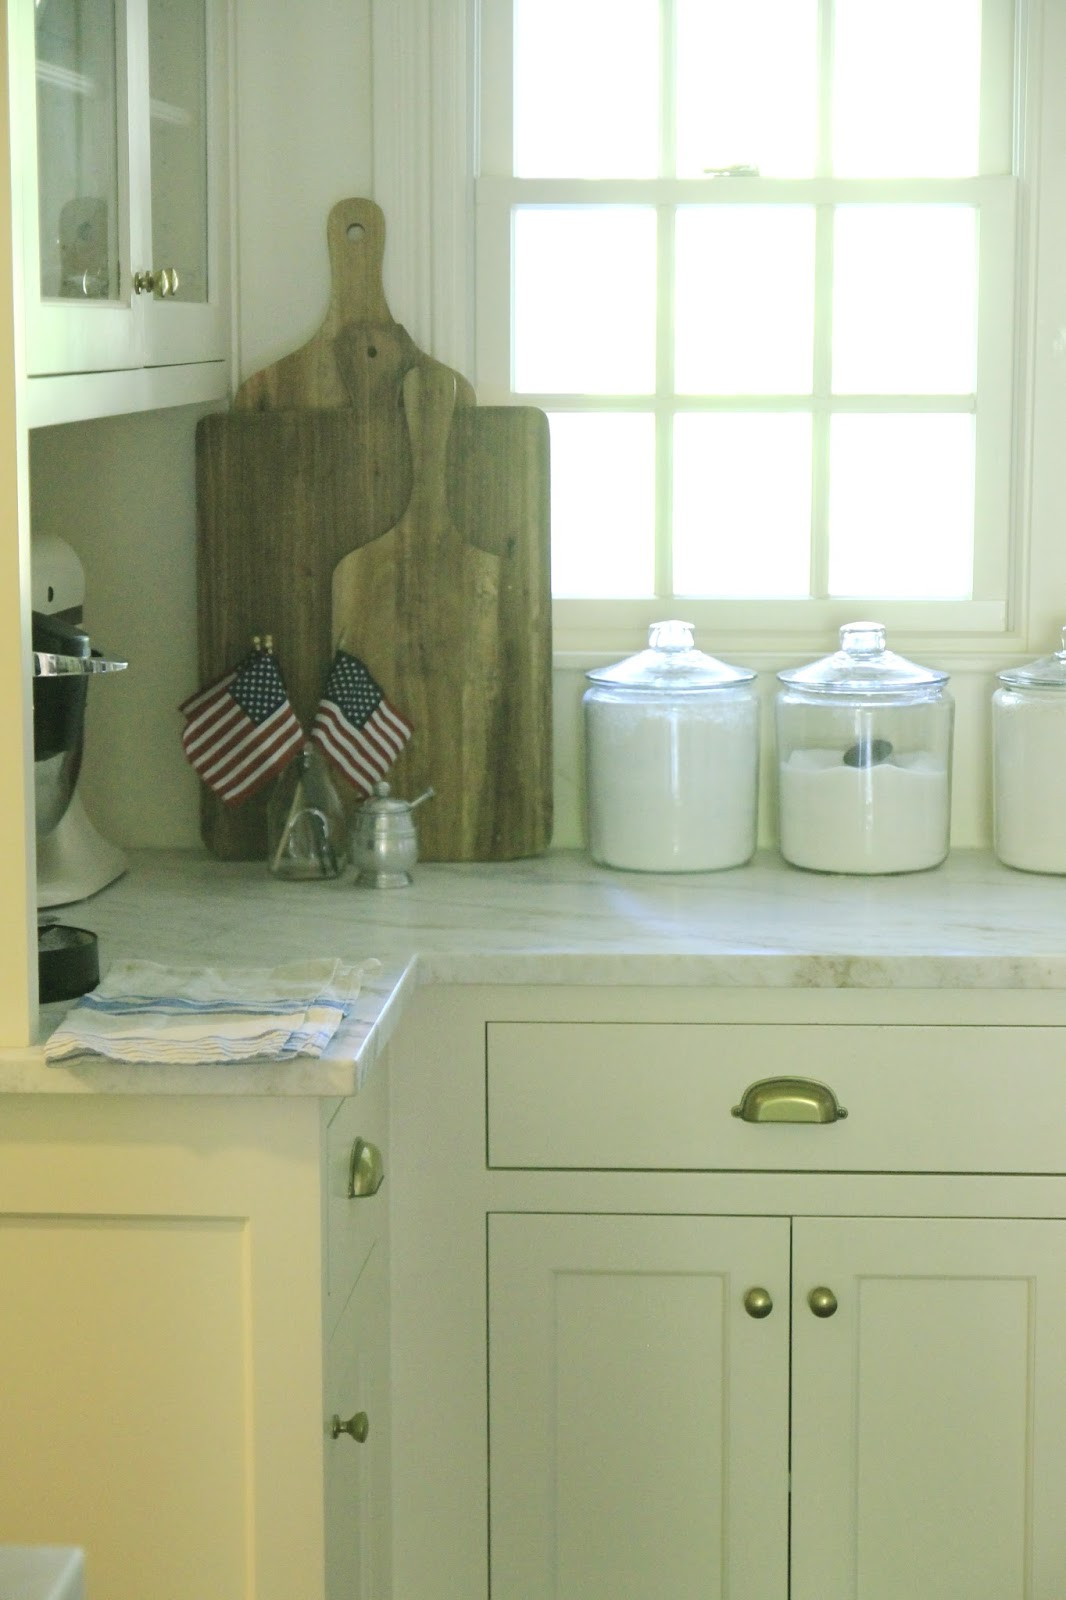 Patriotic kitchen - A Little Shatto Milk Bottle Filled With Small Flags Makes The Kitchen Feel Festive